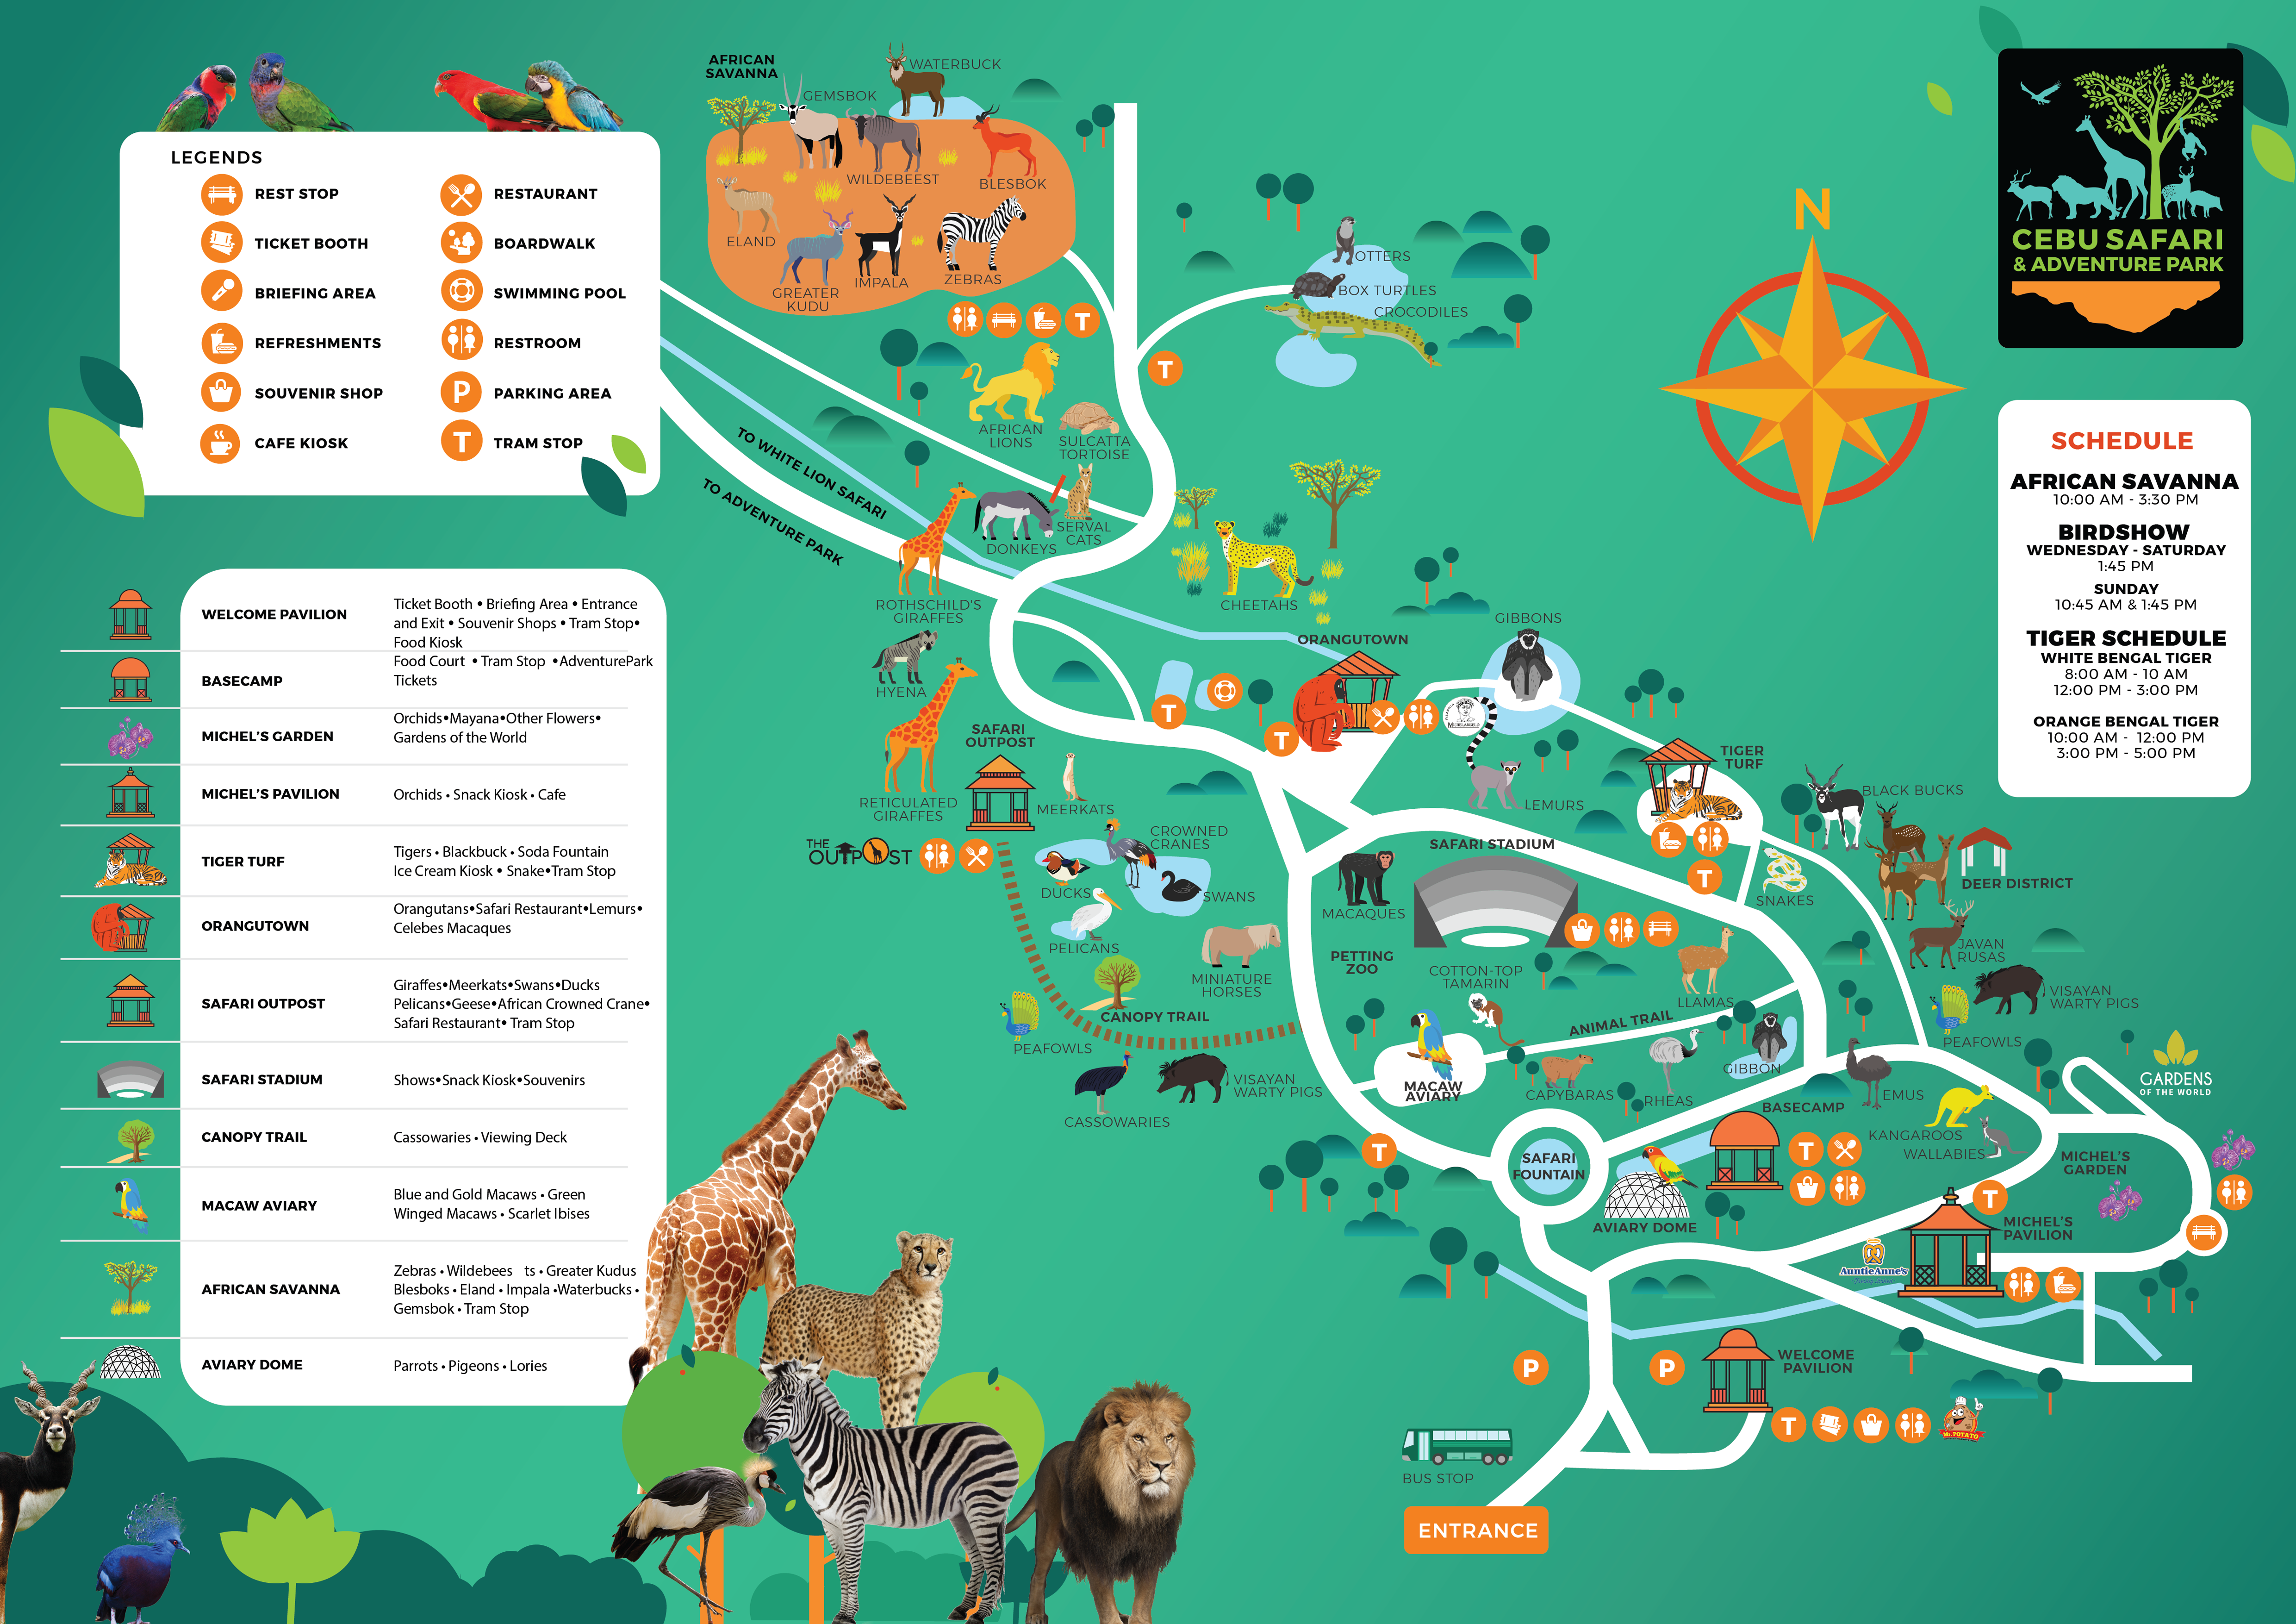 Cebu safari and adventure park map showing its legend, schedule and guidelines